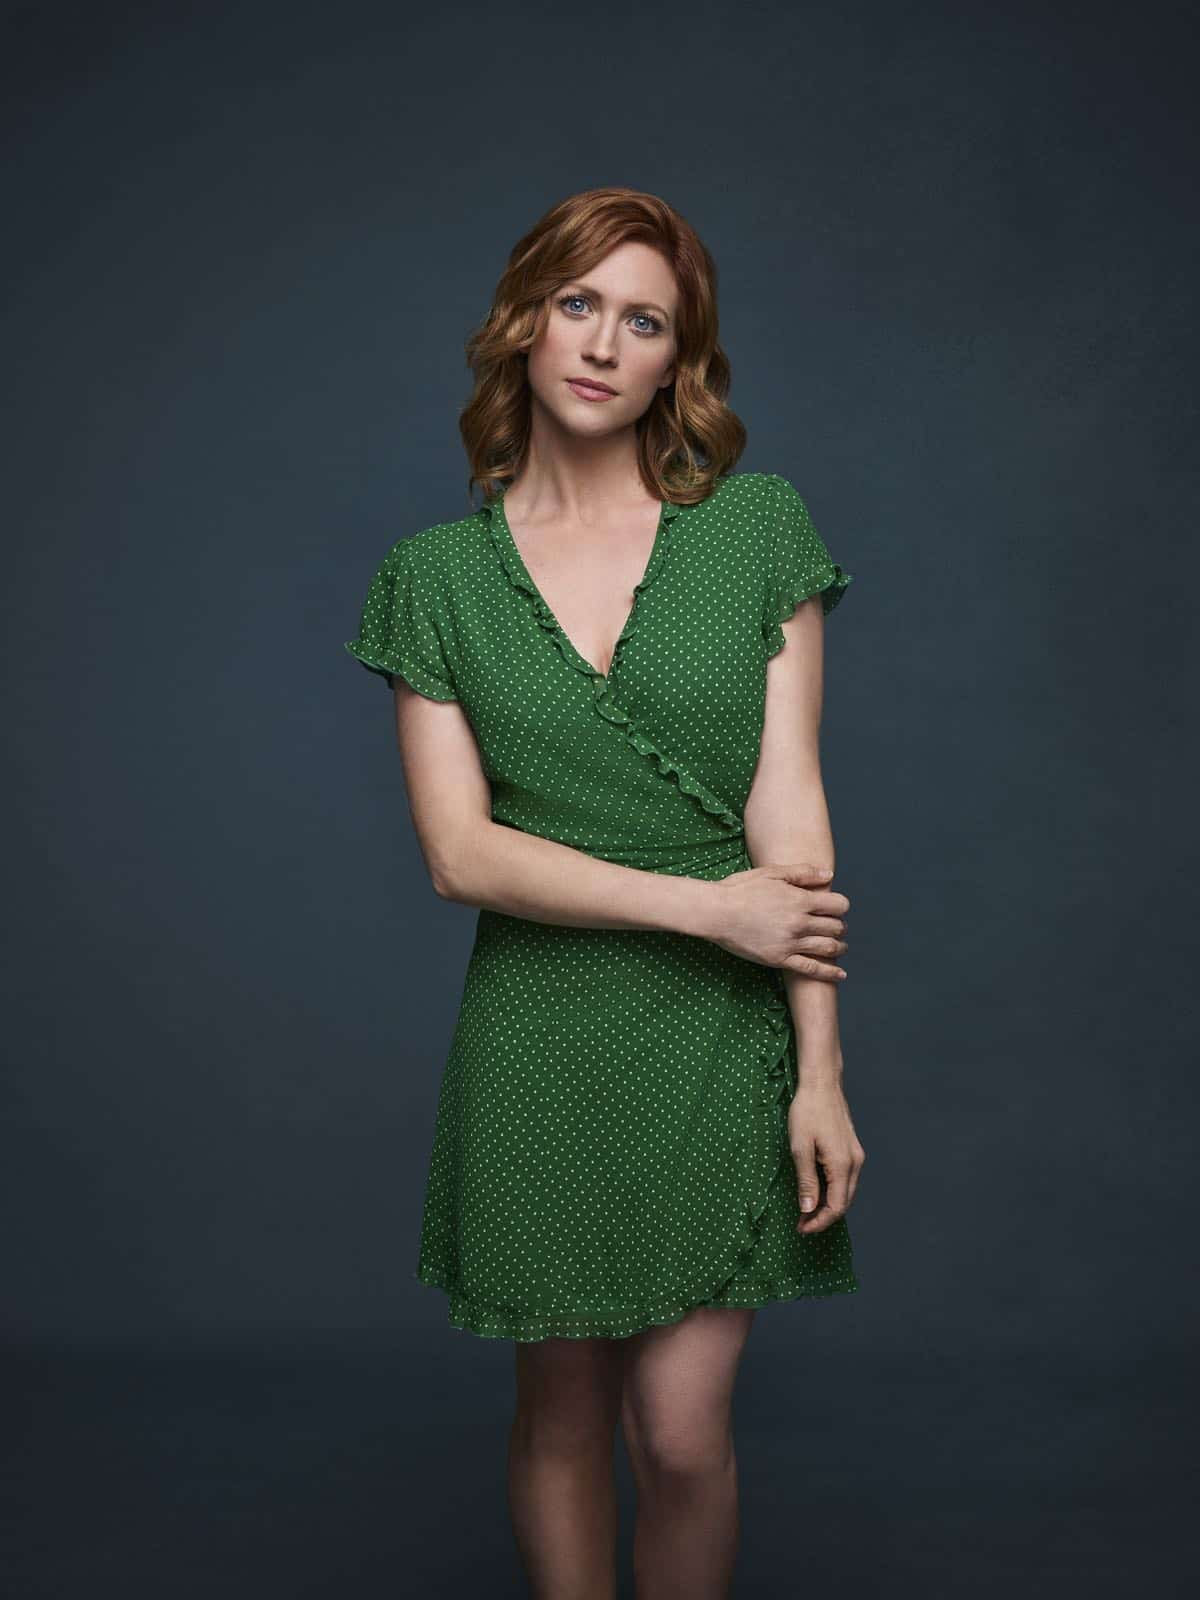 ALMOST FAMILY: Brittany Snow as Julia Bechley in Season 1 of ALMOST FAMILY premiering Wednesday, October 2 (9:00-10:00pm PM ET/PT) on FOX. ©2019 Fox Broadcasting Co. All Rights Reserved. CR: Elisabeth Caren/FOX.